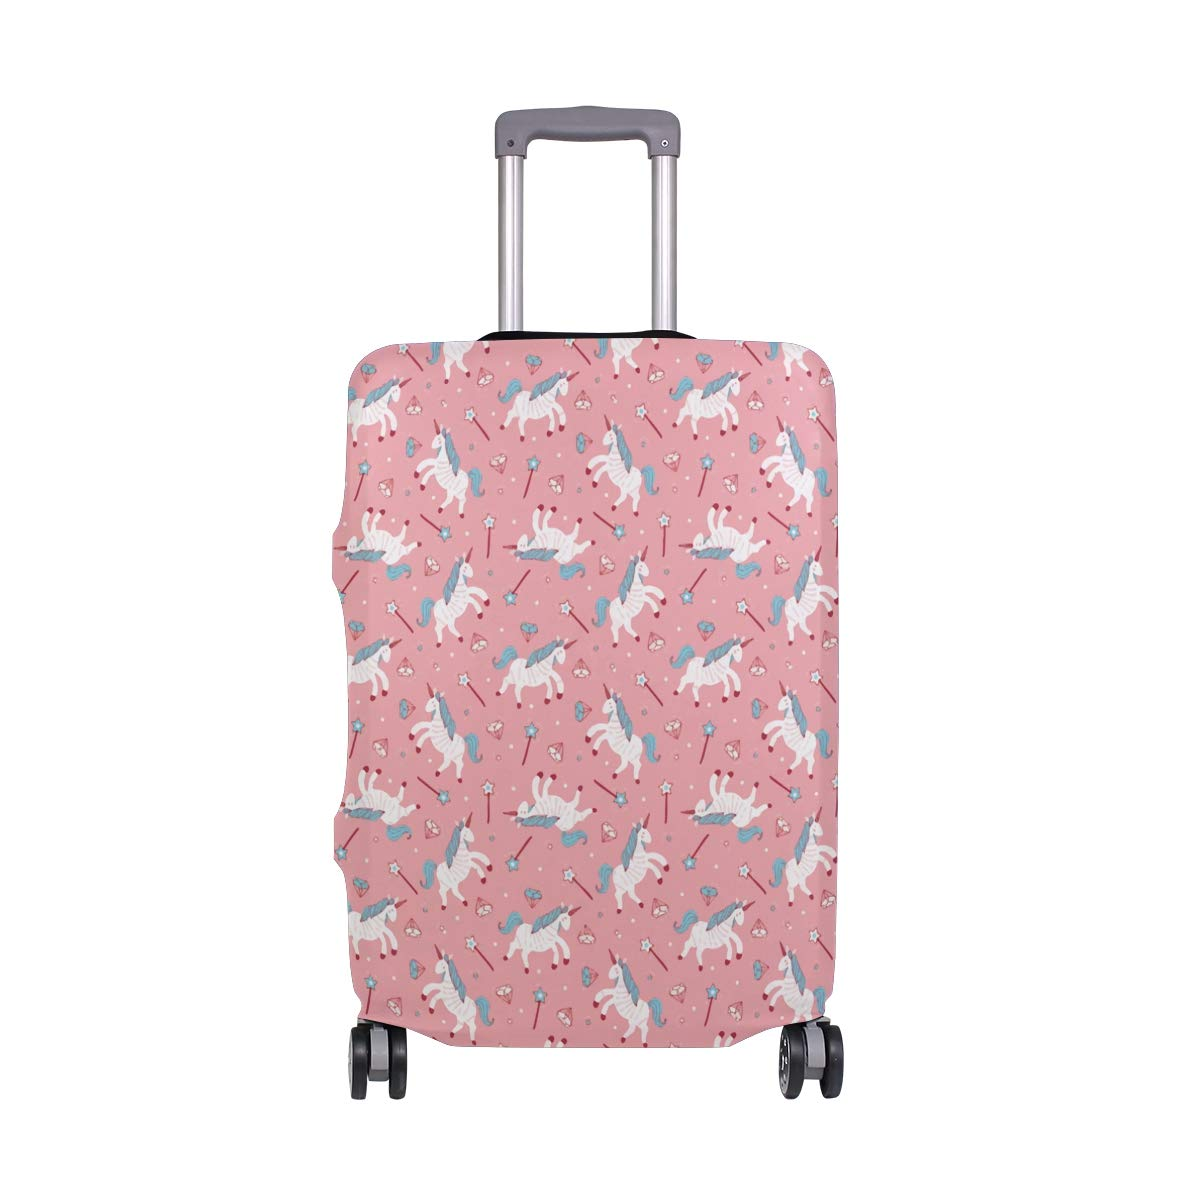 Pink Memories Of Unicrons Travel Suitcase Protector Zipper Suitcase Cover Elastic